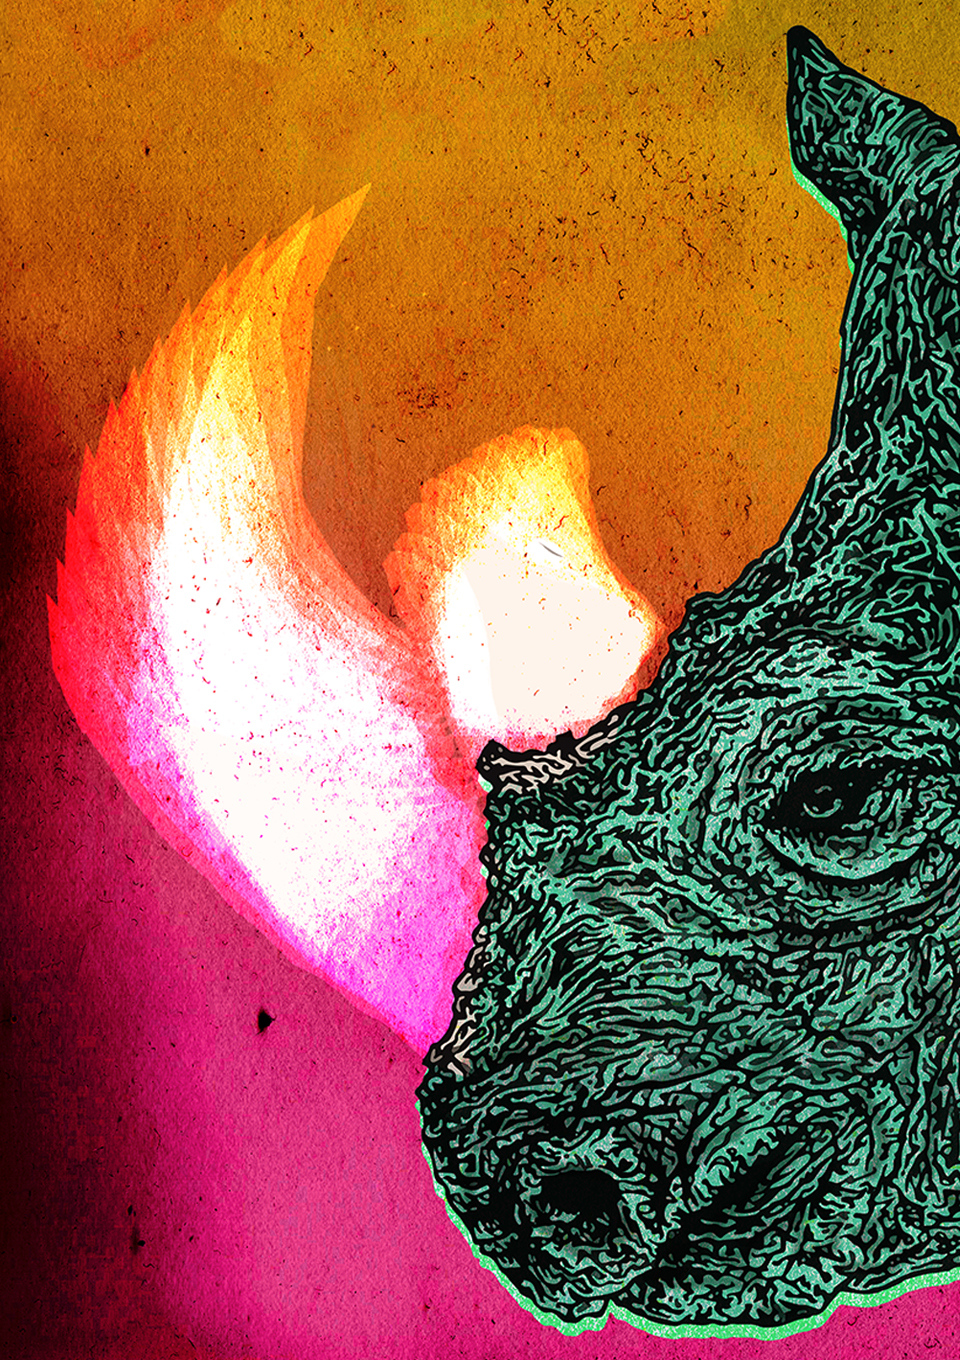 "Hand-drawn colourful illustration of a rhinoceros for Irish musician Lasertom's music EP release 'Super Saor"" 2018 using pen and pencil by Berlin-based artist and illustrator John Rooney"